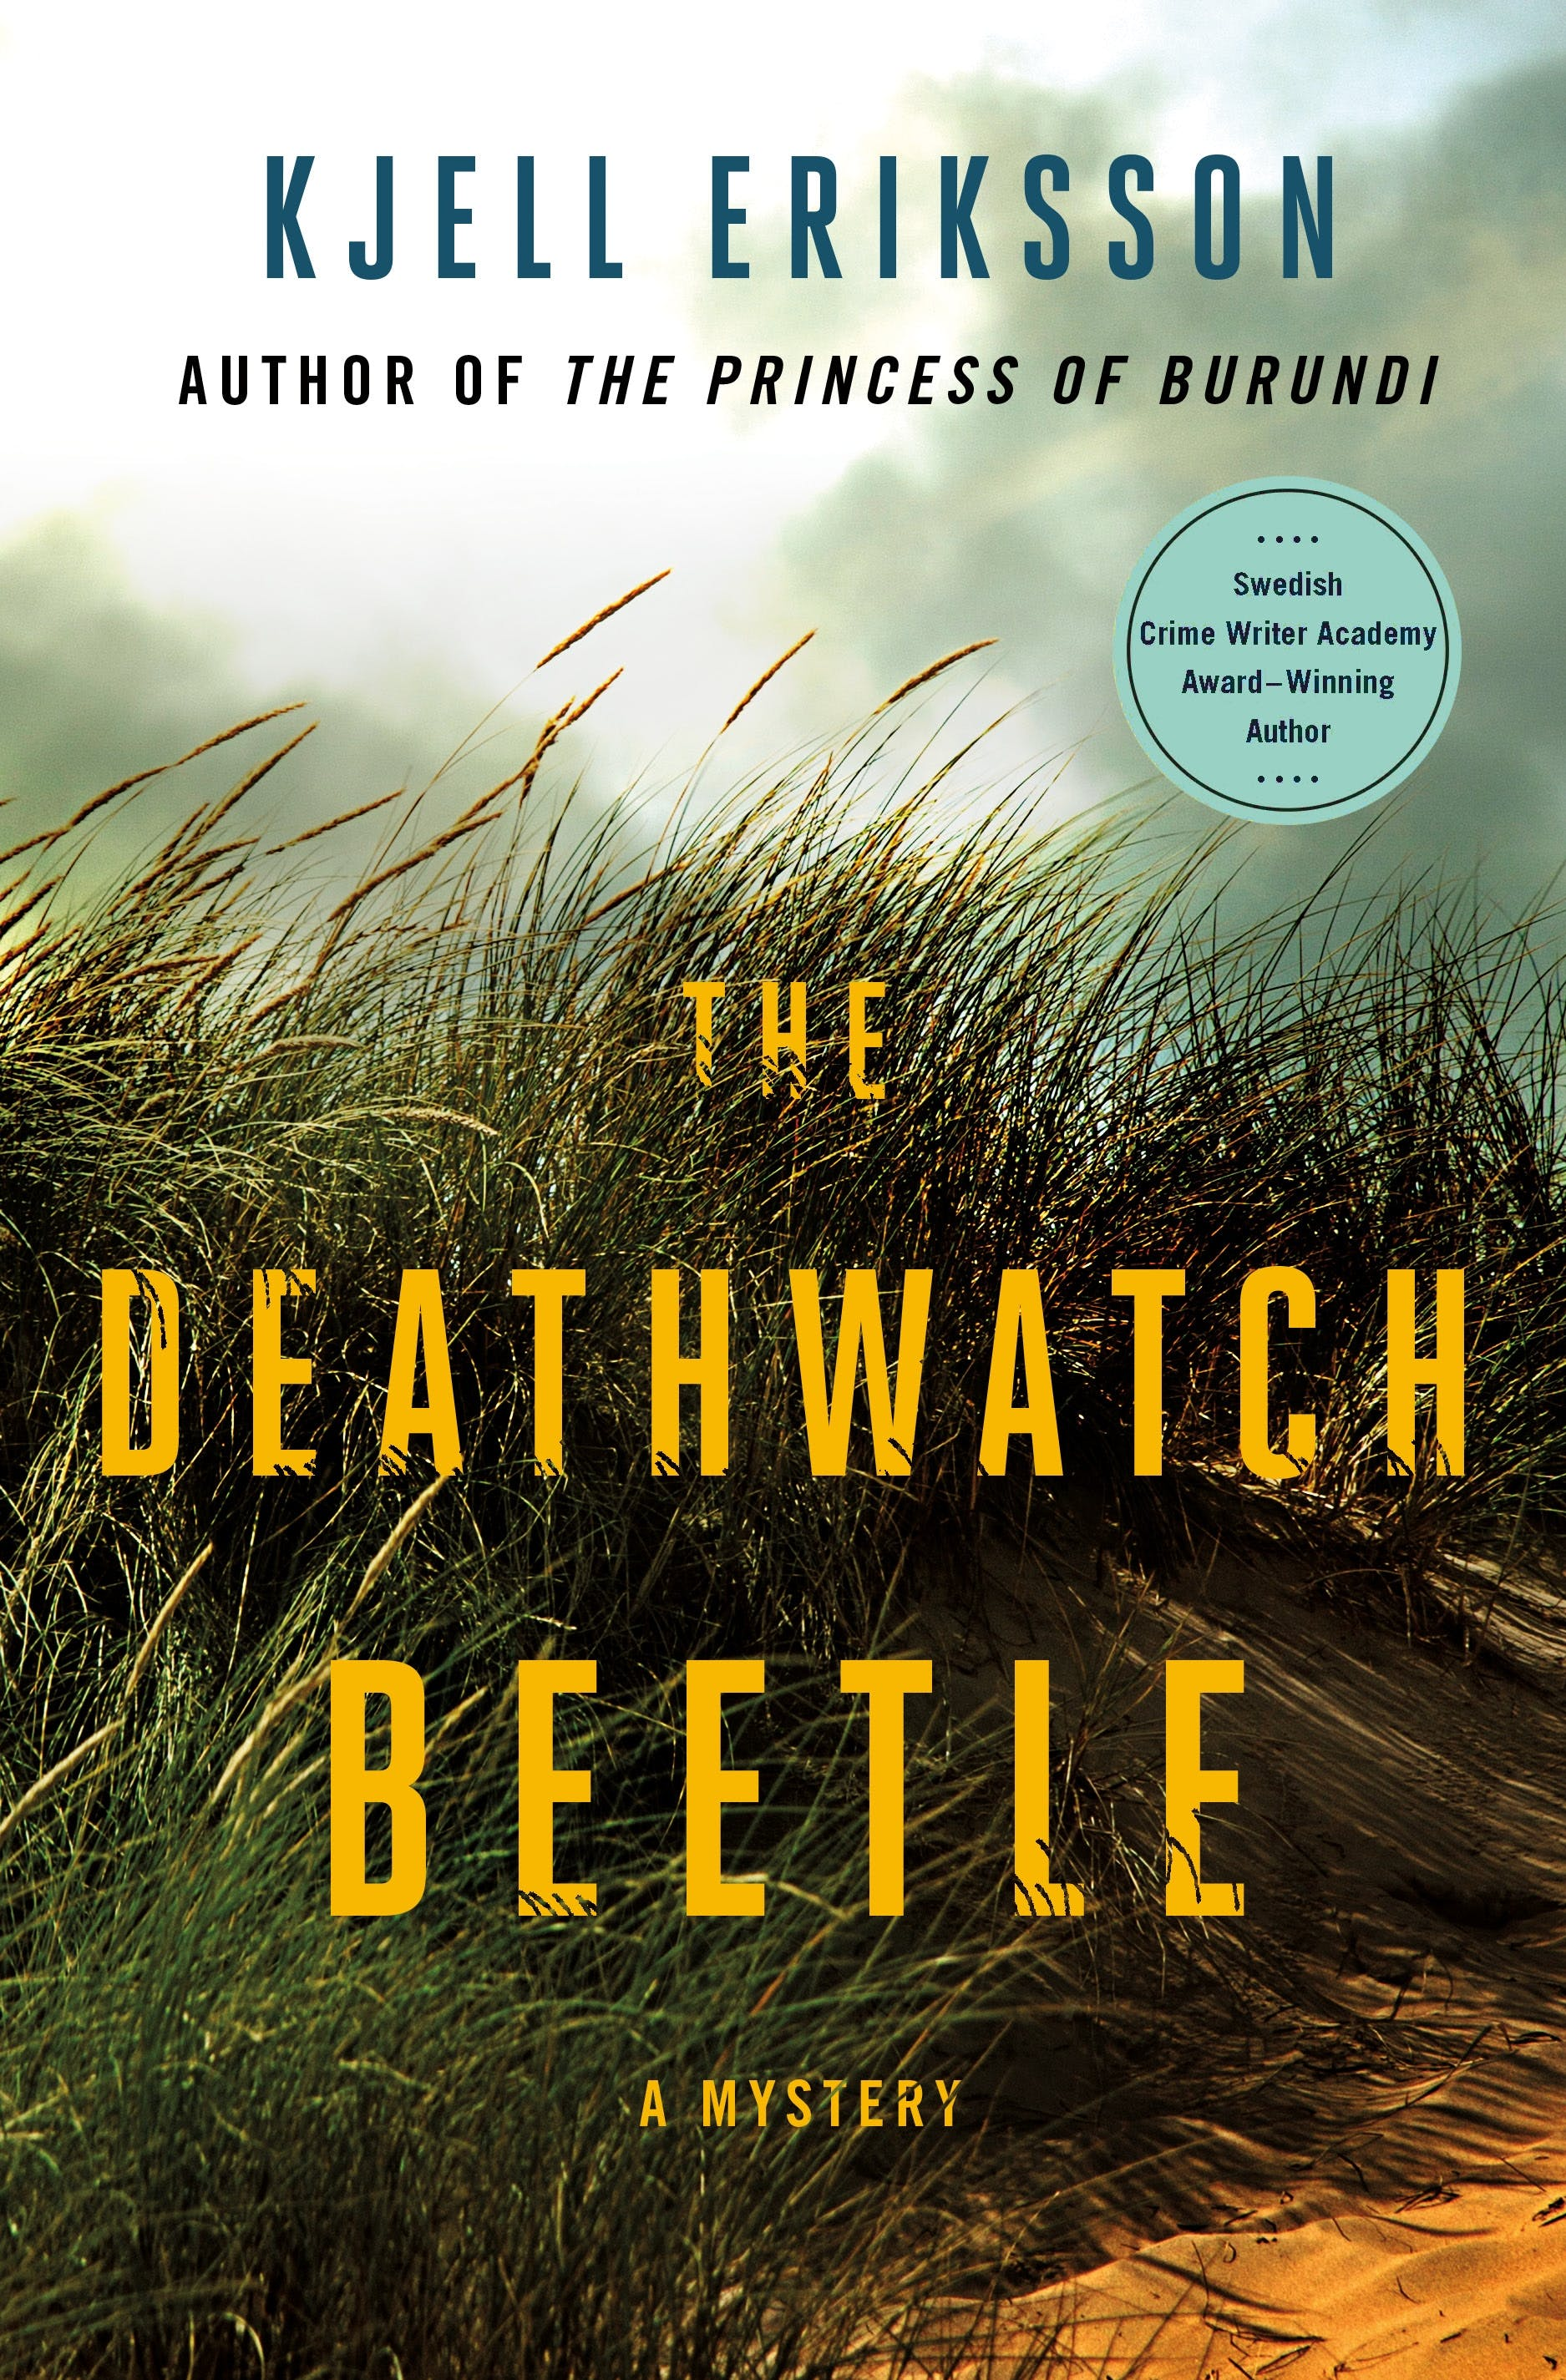 Image of The Deathwatch Beetle